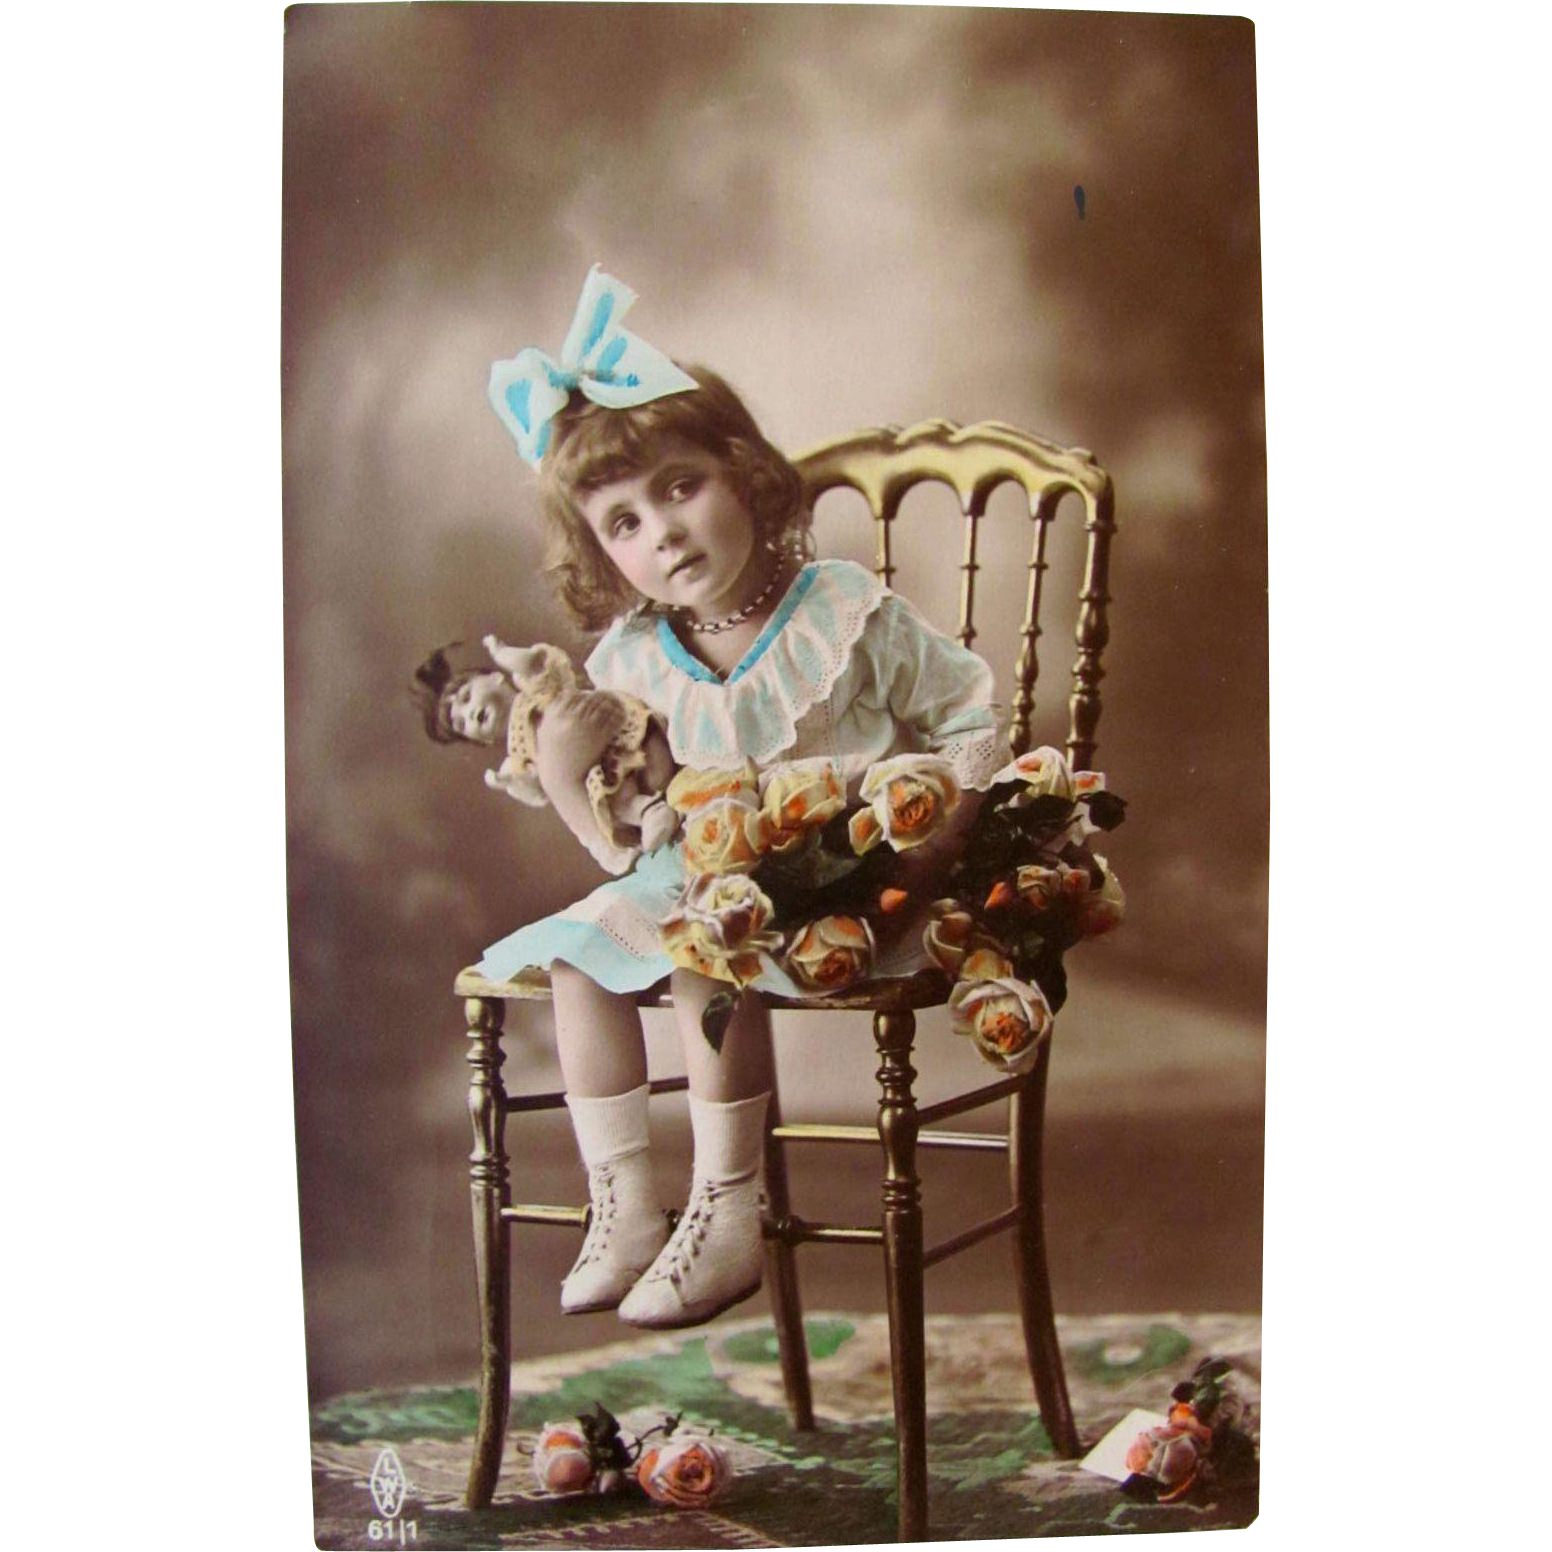 Tinted Real Photo Dutch Postcard Little Girl With Bisque Doll and Roses, Vintage 1926